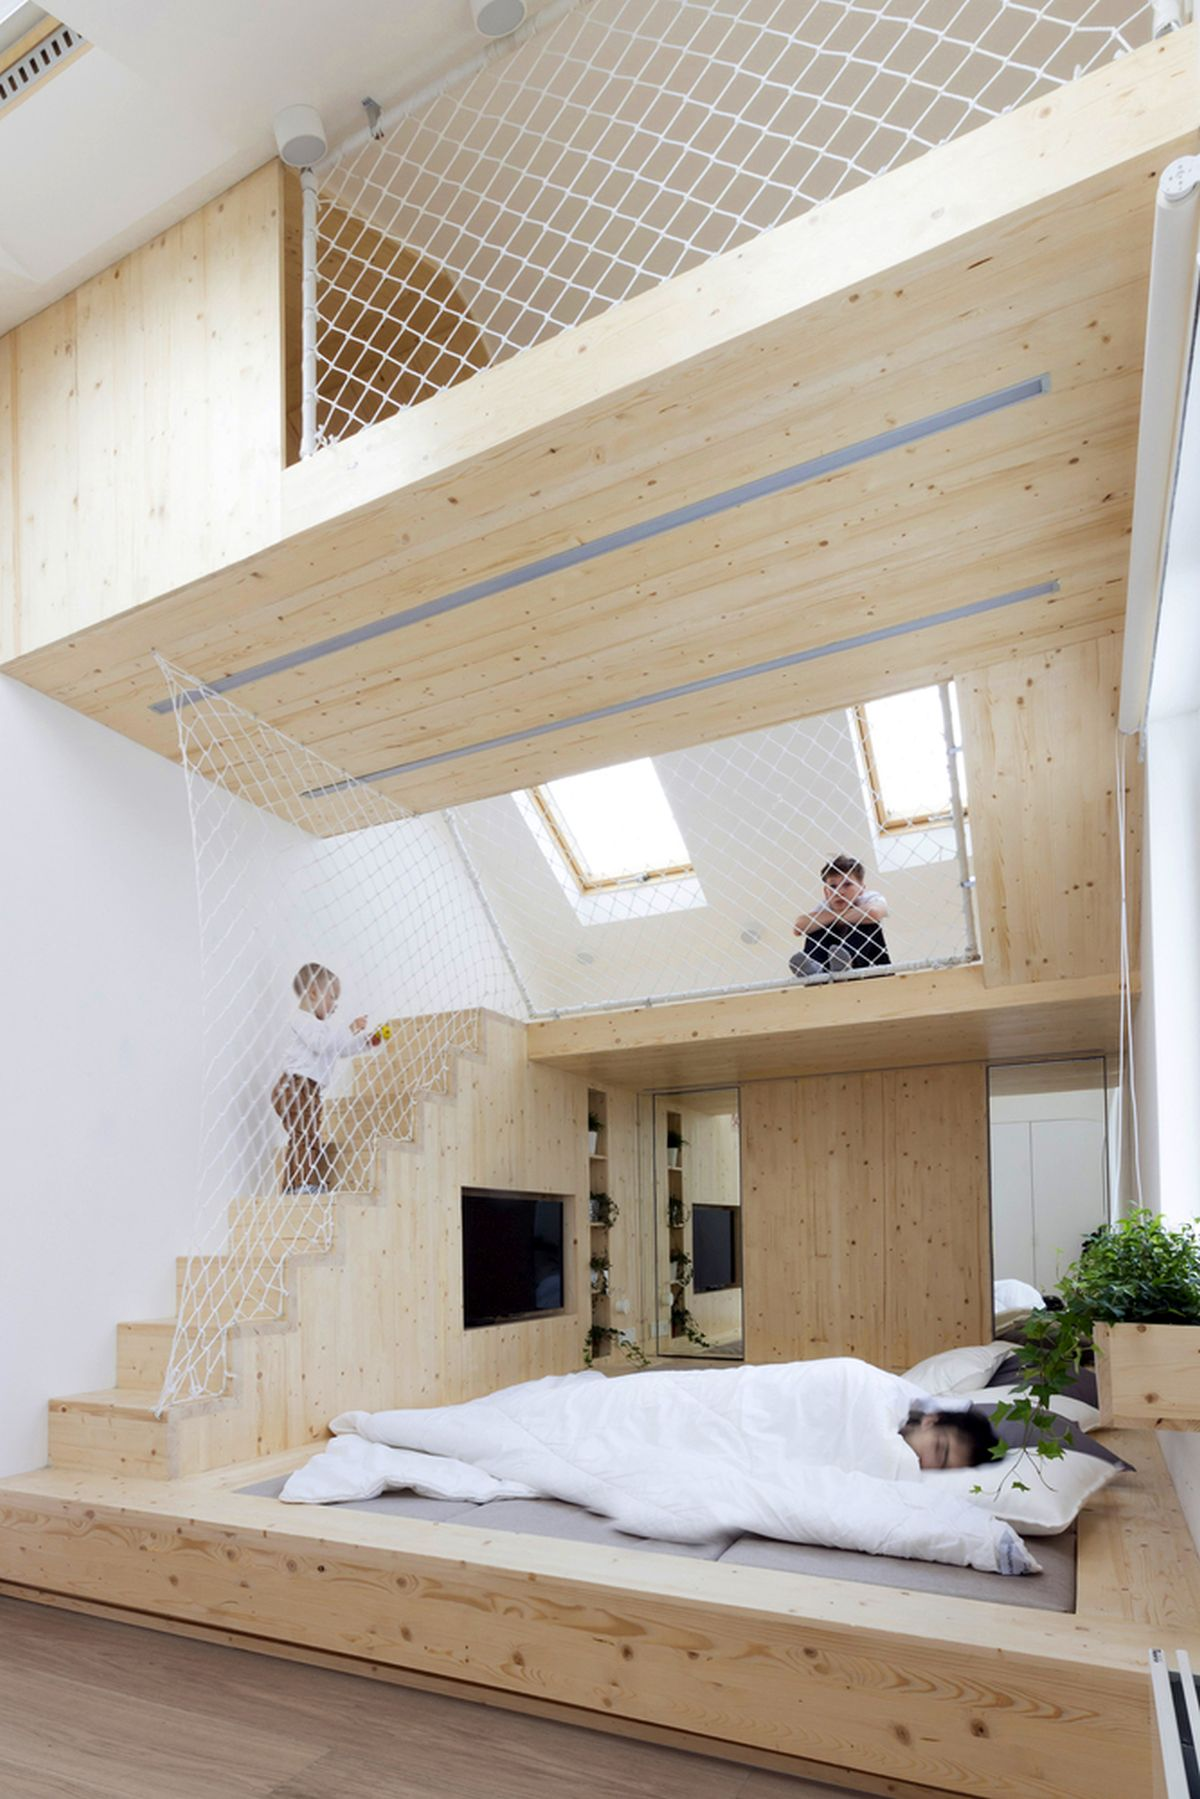 Ruetemple summer family home sleeping area